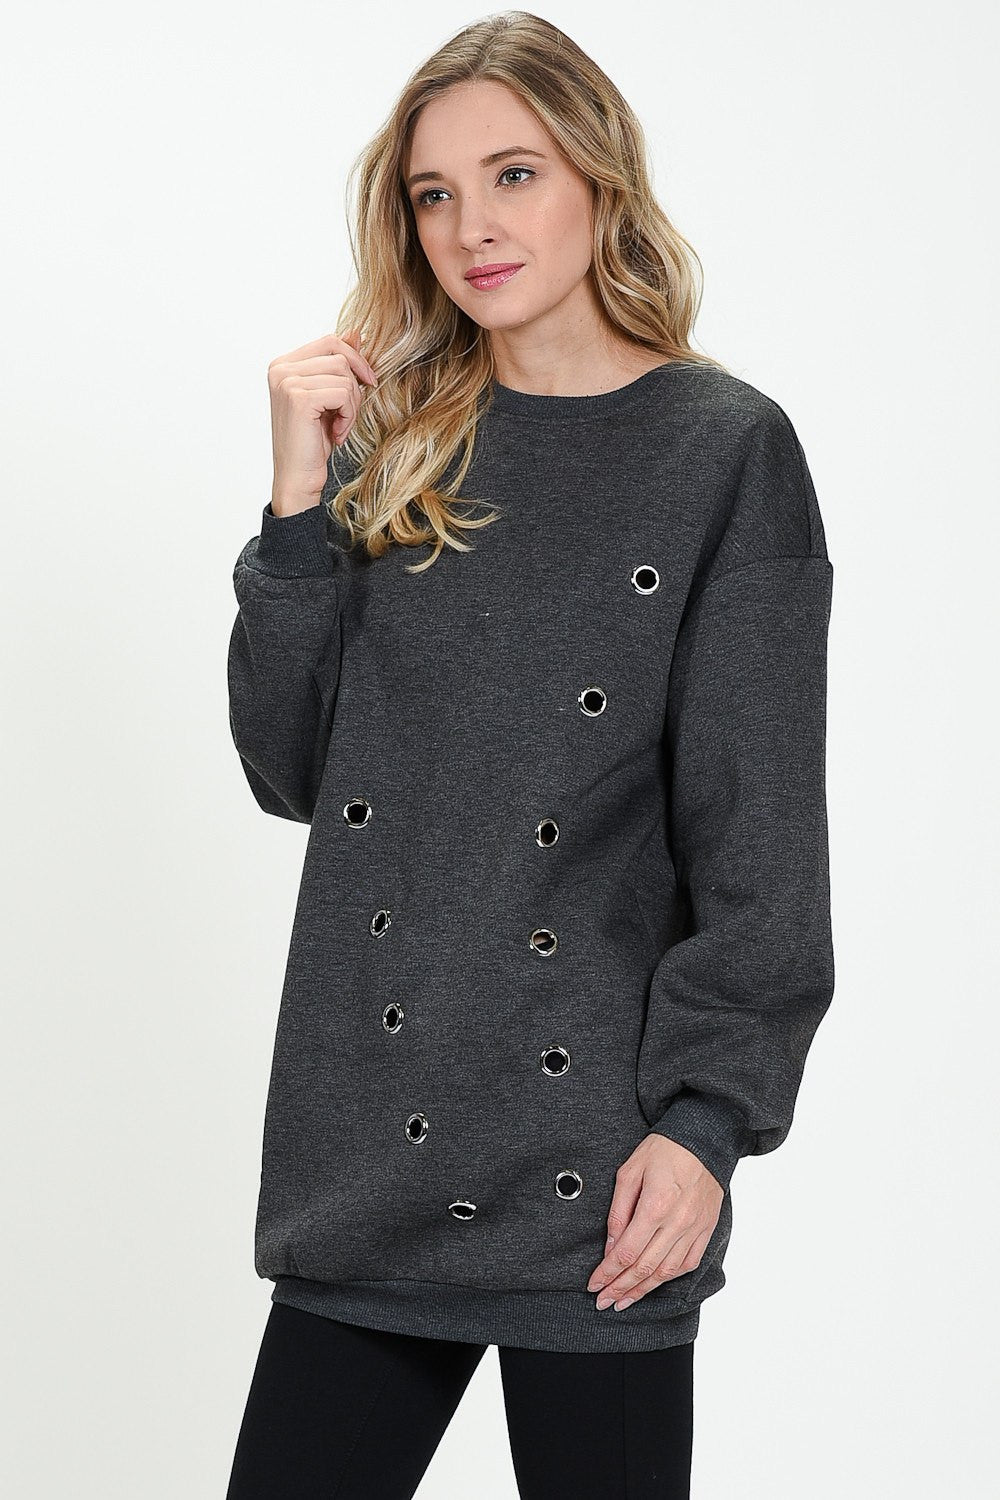 GREY RING AMY SWEATER